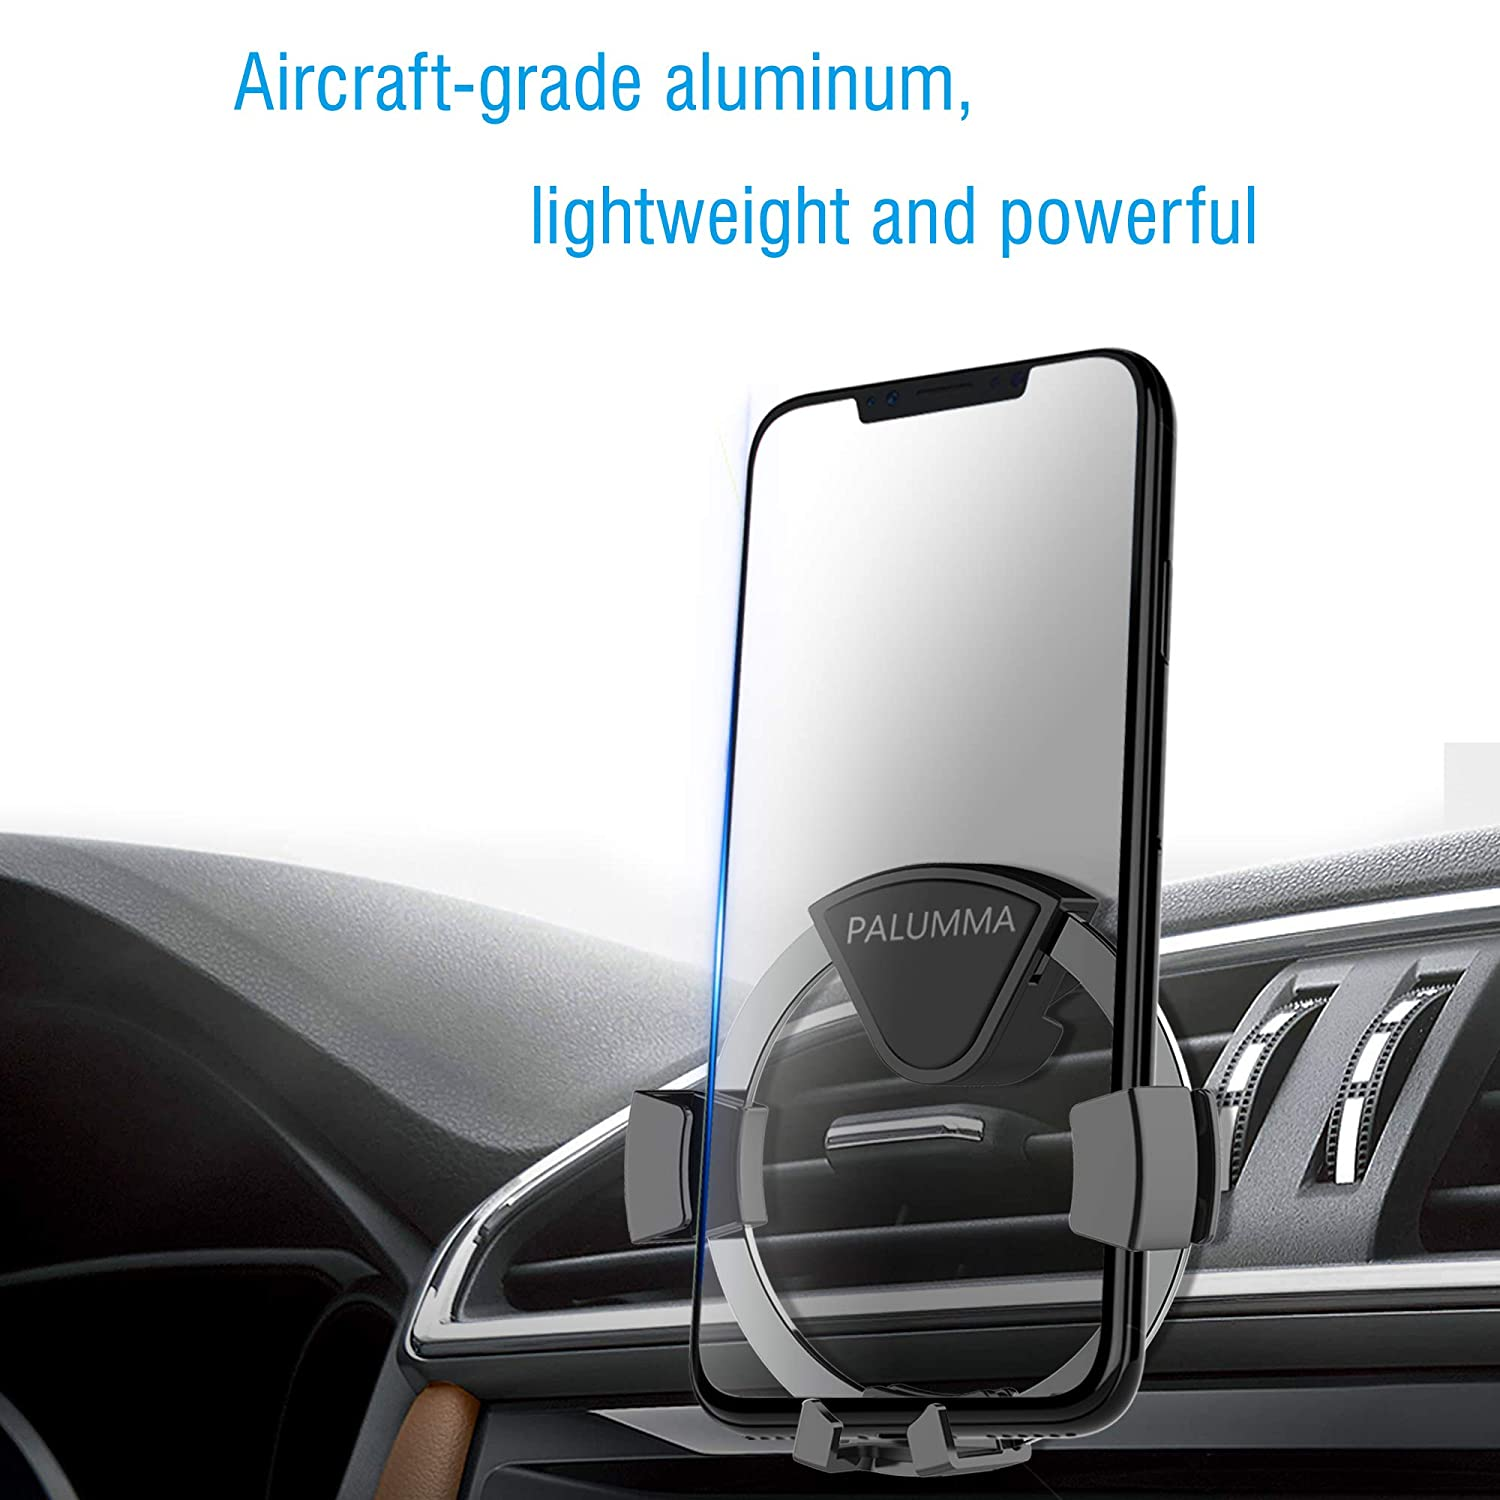 Sony Palumma Air Vent Car Phone Holder Auto-Clamping Handsfree Cellphone Encircling Gravity Car Mount Cradle Compatible with iPhone XS//X//8//7//6s//Plus LG Samsung Note 9// S9//S9 Plus//S8 HTC 4350465340